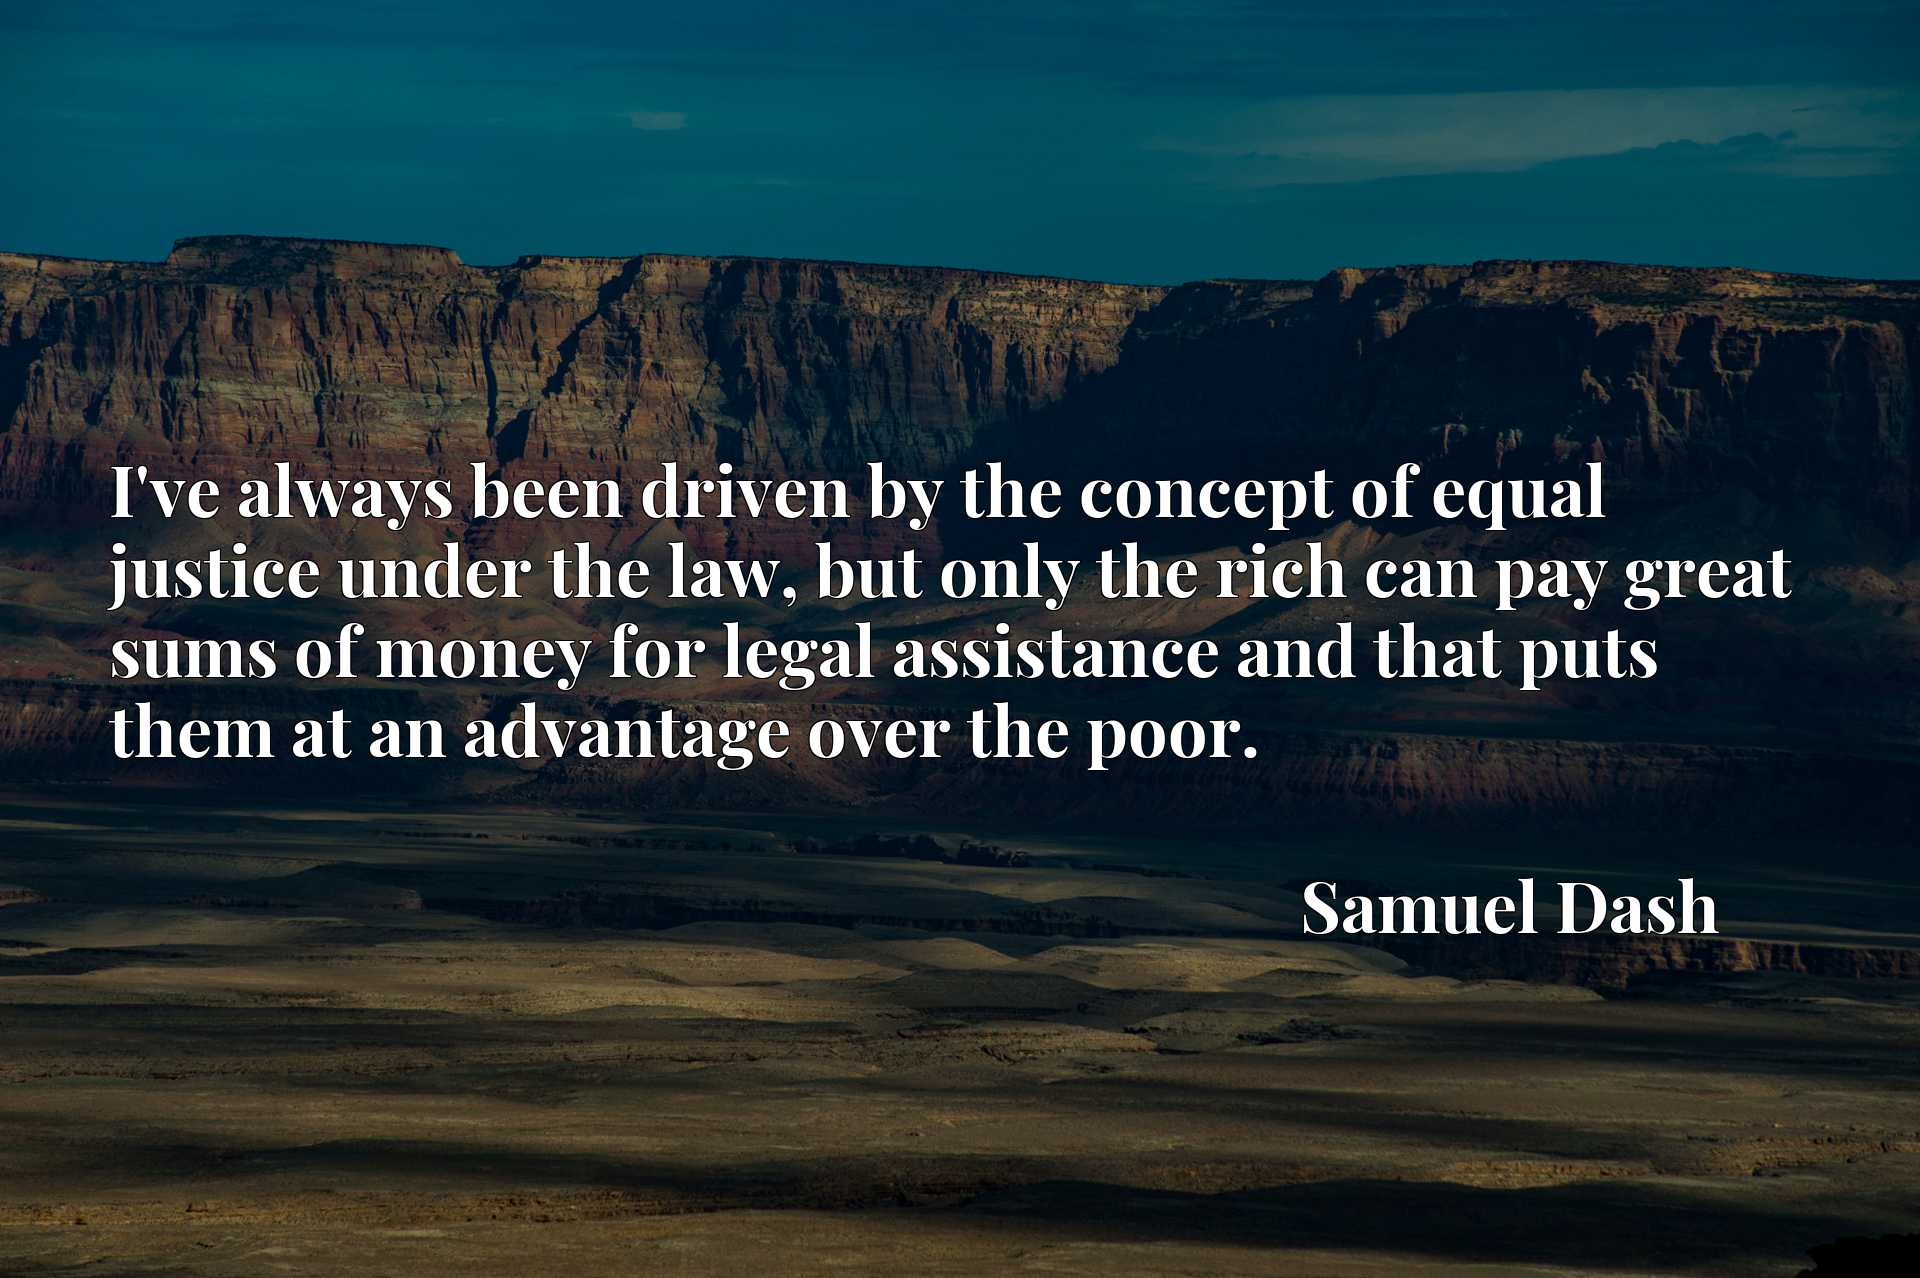 Quote Picture :I've always been driven by the concept of equal justice under the law, but only the rich can pay great sums of money for legal assistance and that puts them at an advantage over the poor.